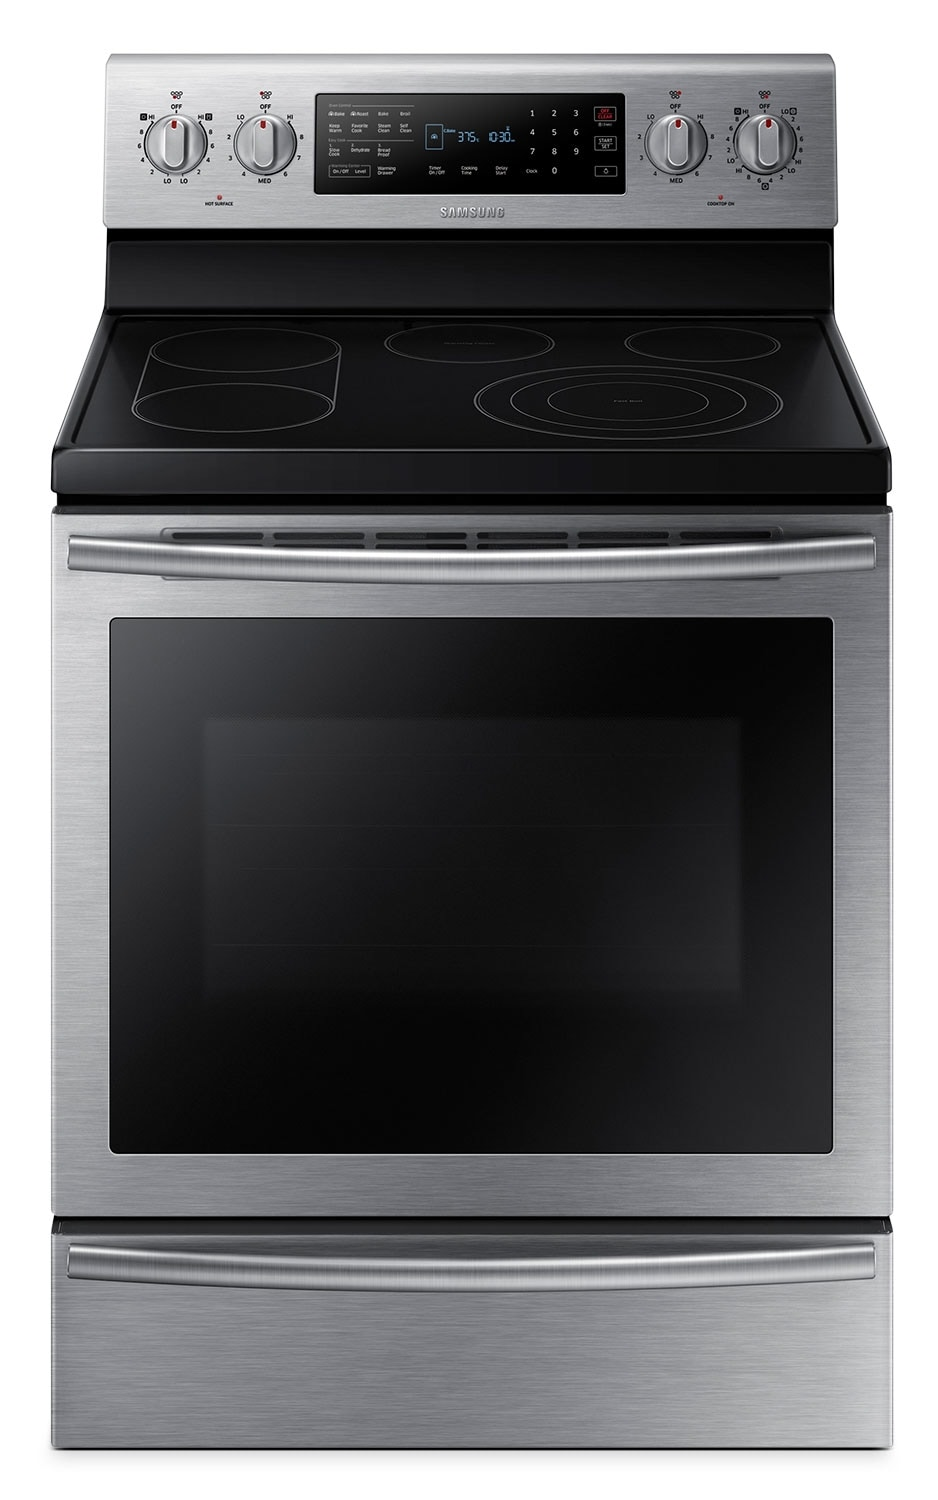 Cooking Products - Samsung Stainless Steel Freestanding Electric Convection Range (5.9 Cu. Ft.) - NE59J7651WS/AC